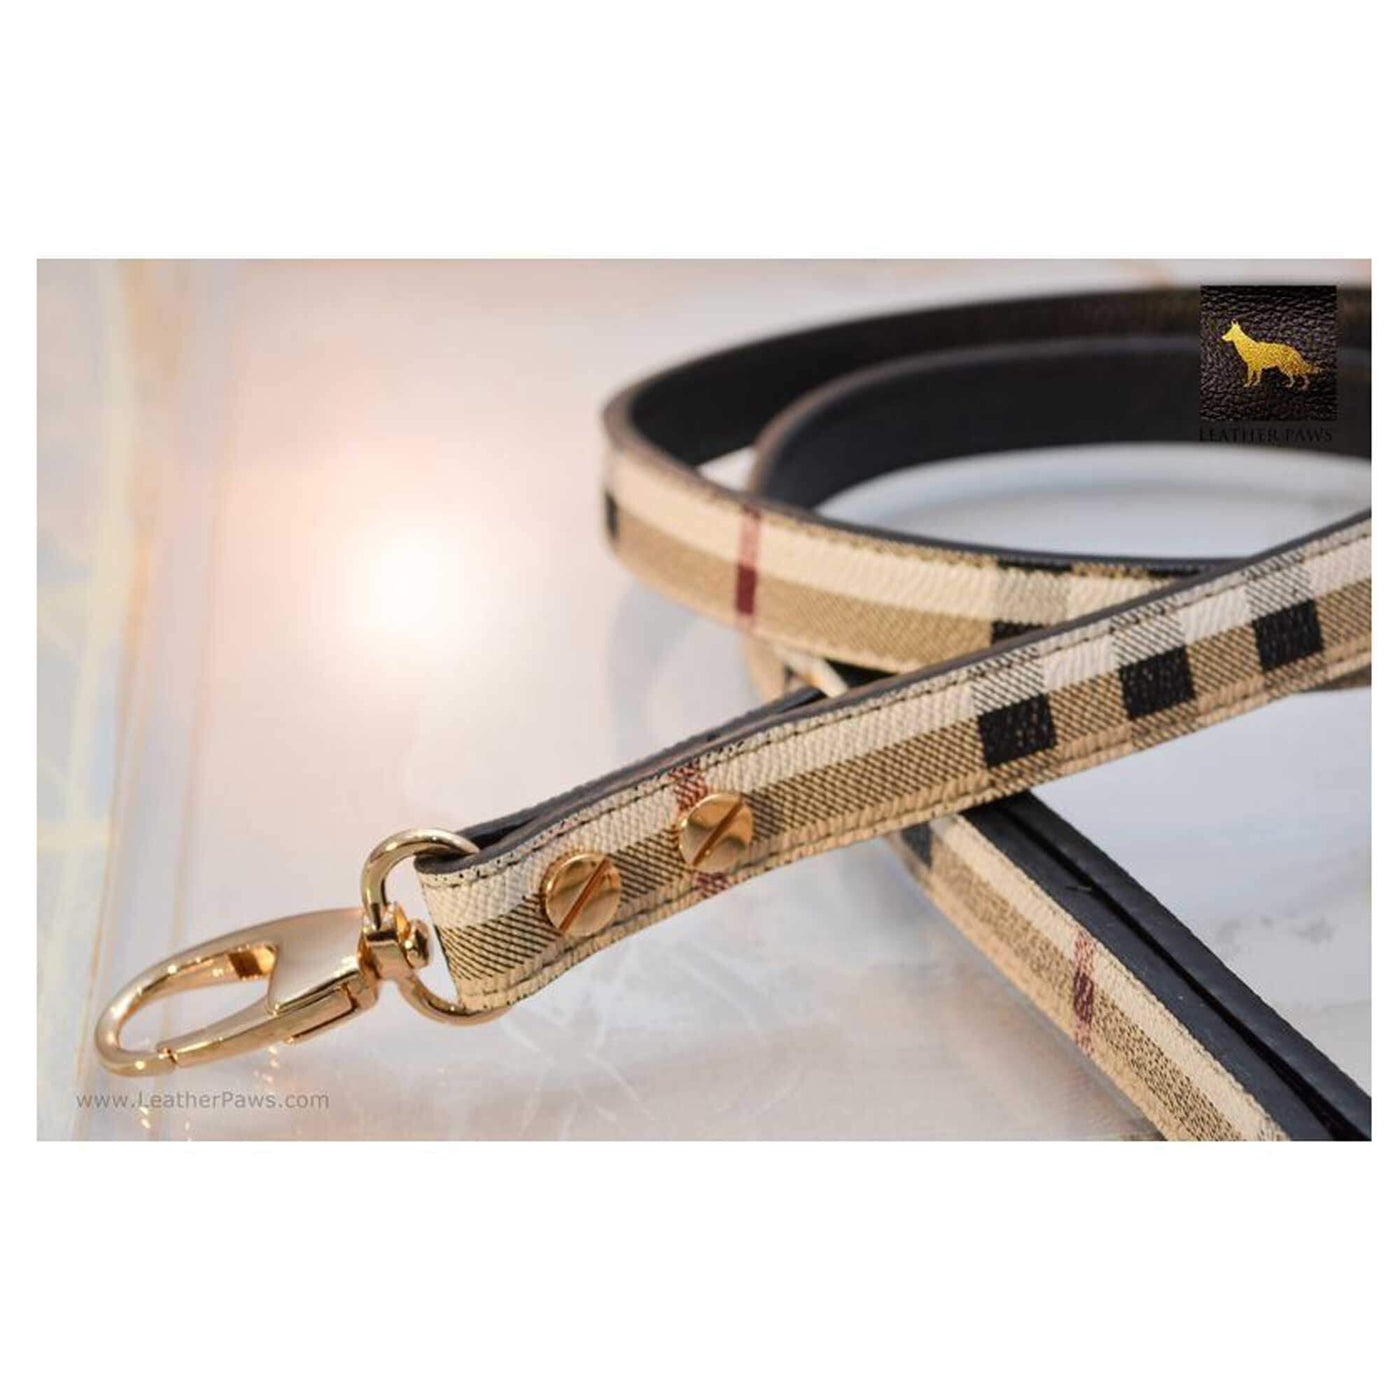 Pets - Plaid Designer Leather Dog Leash